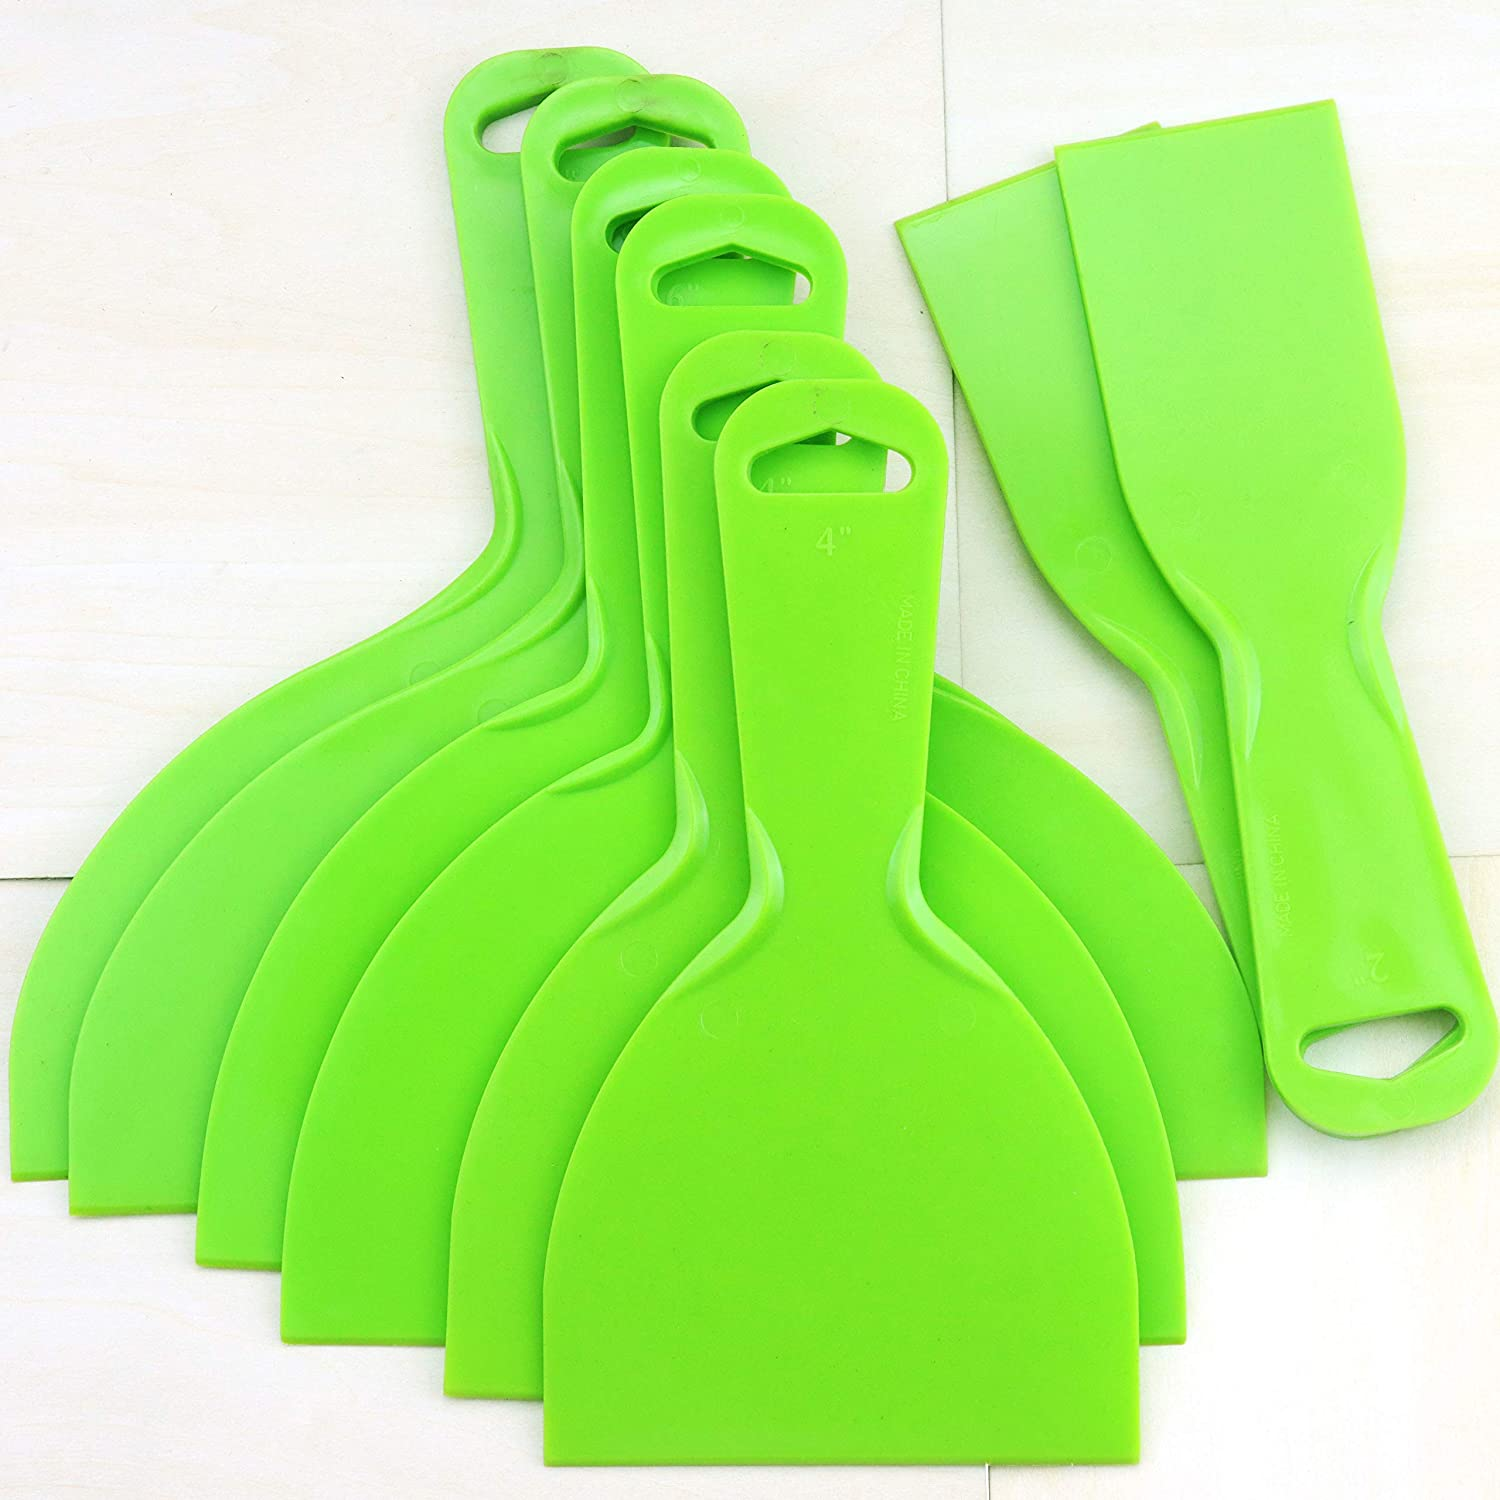 YG_Oline 8 Pack Plastic Putty Scrapers Set, Green Wallpaper Scraper Tools for Decals, Baking, Auto Film, 2 inch, 4 inch, 6 inch, 8 inch